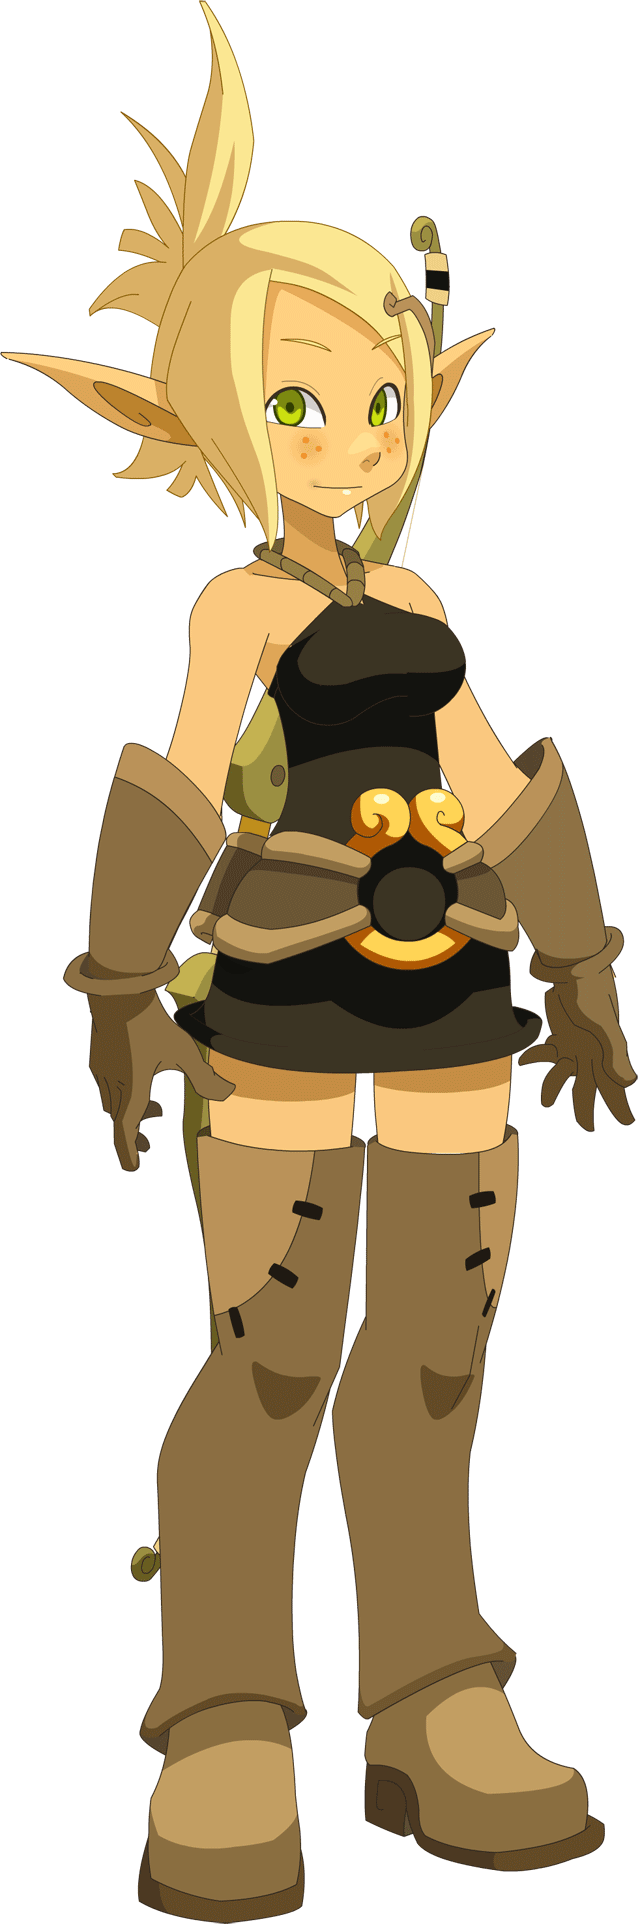 Wakfu Anime Character Design : Evangelyne see more best ideas about google search and